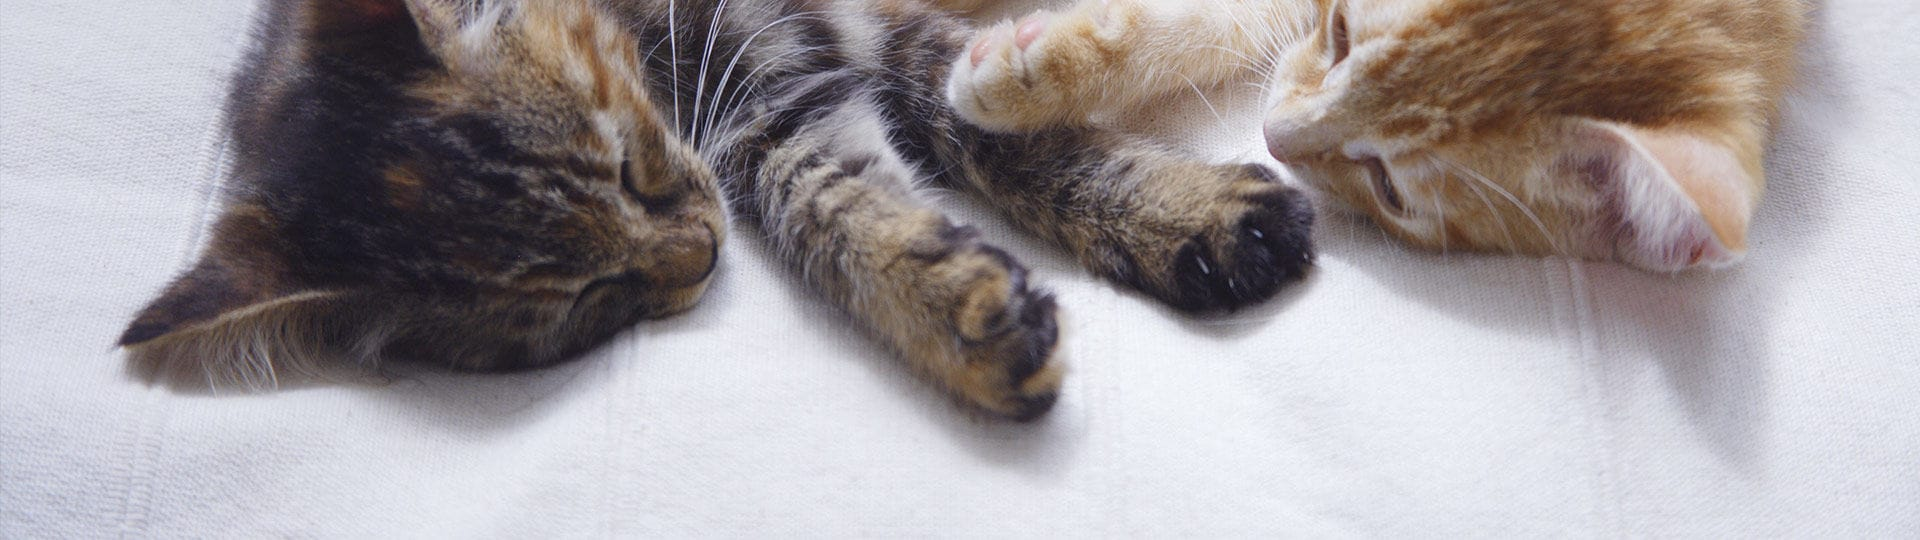 Getting a new cat and how to introduce it to other animals and people